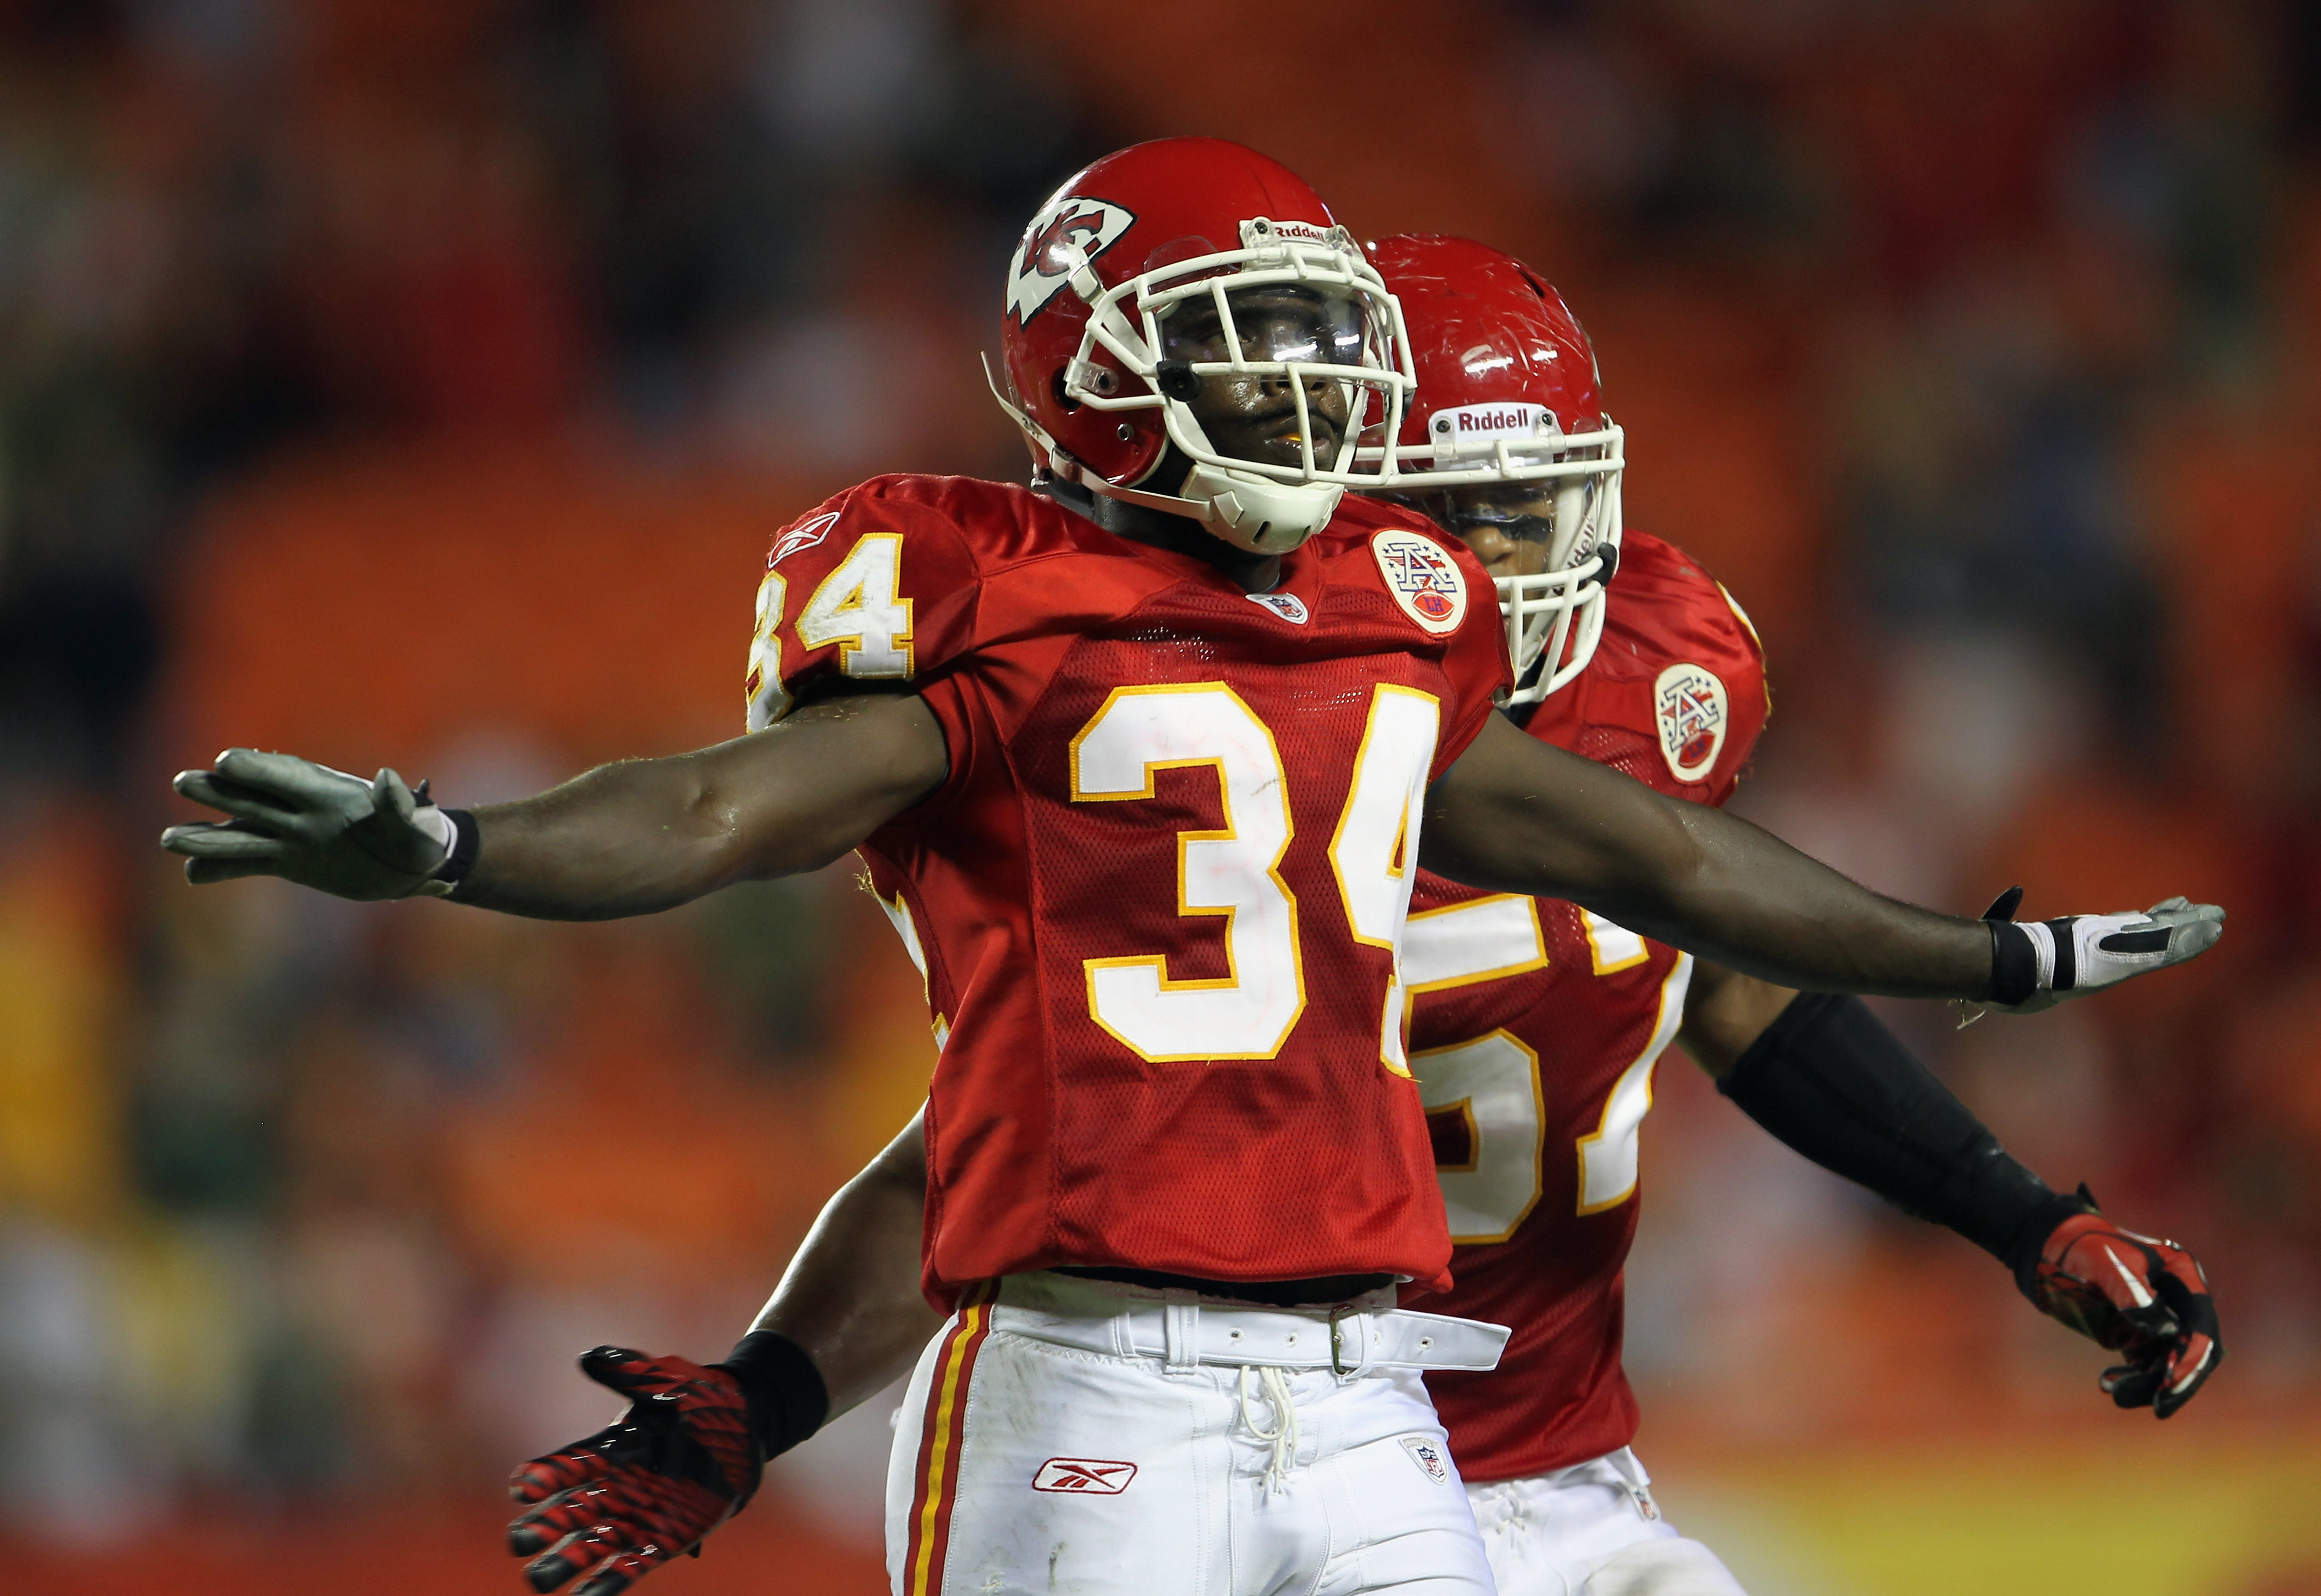 KANSAS CITY, MO - SEPTEMBER 02:  Travis Daniels #34 and Justin Cole #57 of the Kansas City Chiefs celebrates after stopping a final drive during the game against the Green Bay Packers on September 2, 2010 at Arrowhead Stadium in Kansas City, Missouri.  (P